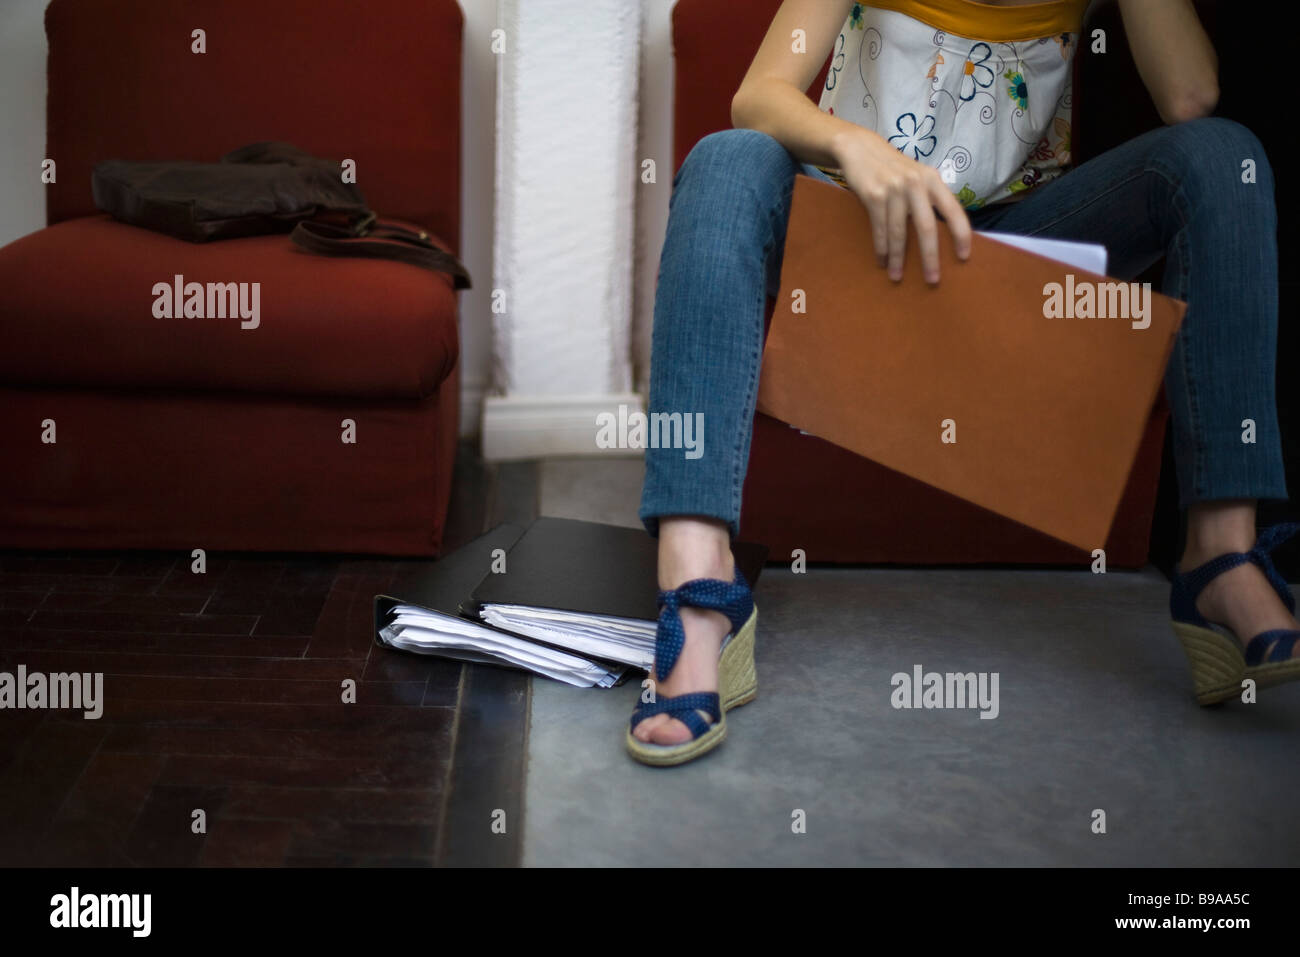 Woman holding fichier, assis avec les jambes, cropped Photo Stock